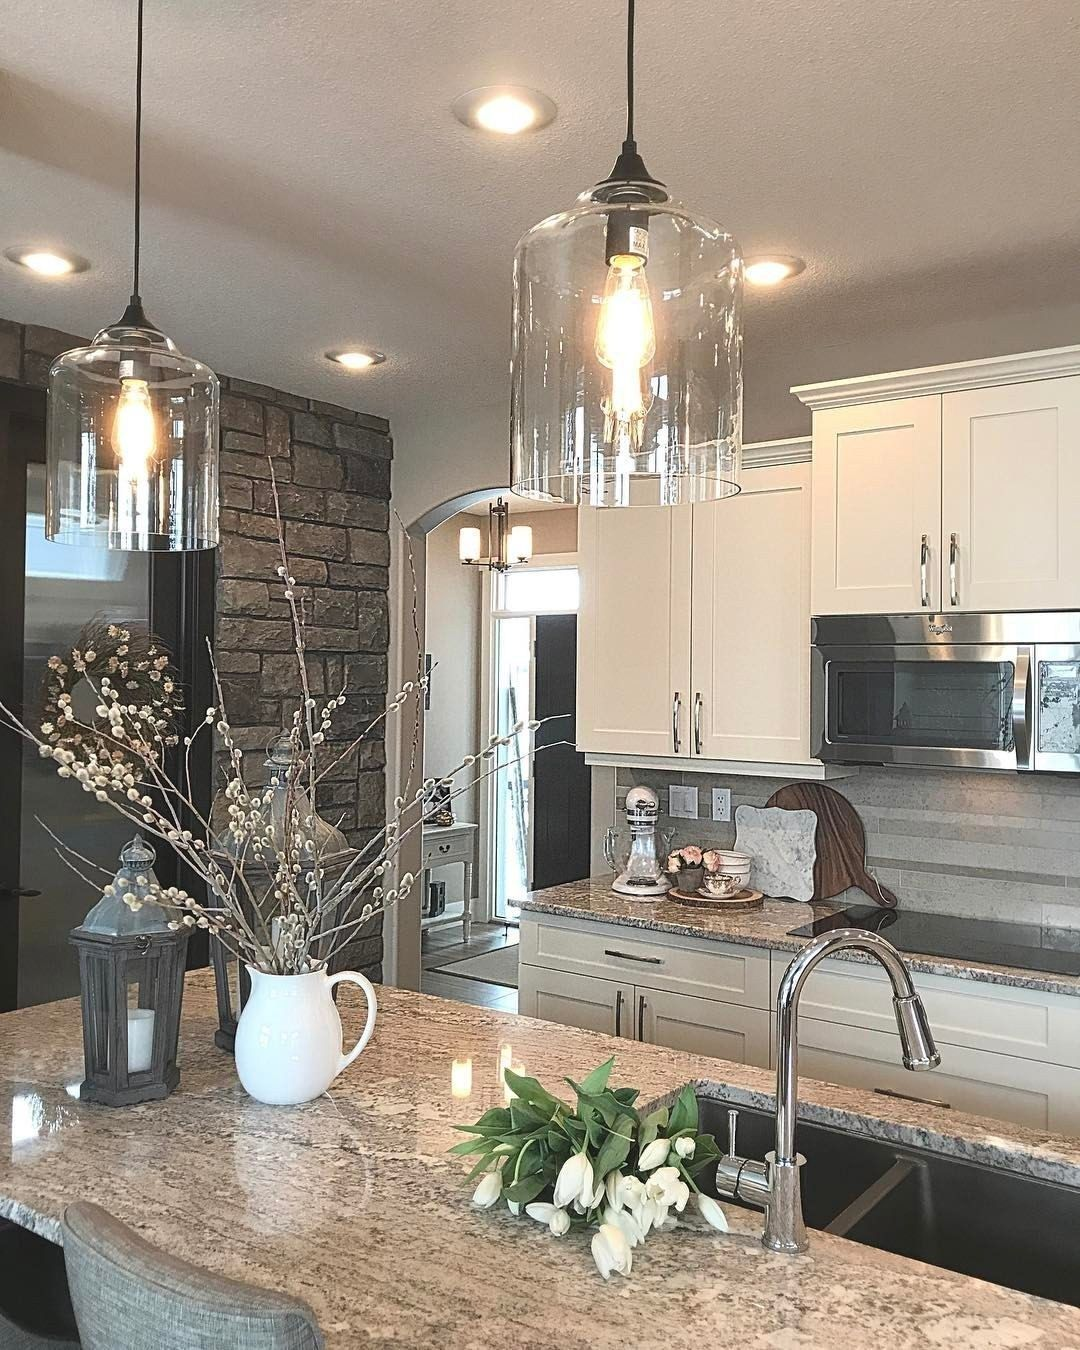 Kitchen Island Lighting Modern Rustic And Industrial Design In 2020 Modern Farmhouse Dining Room Farmhouse Kitchen Lighting Modern Farmhouse Dining